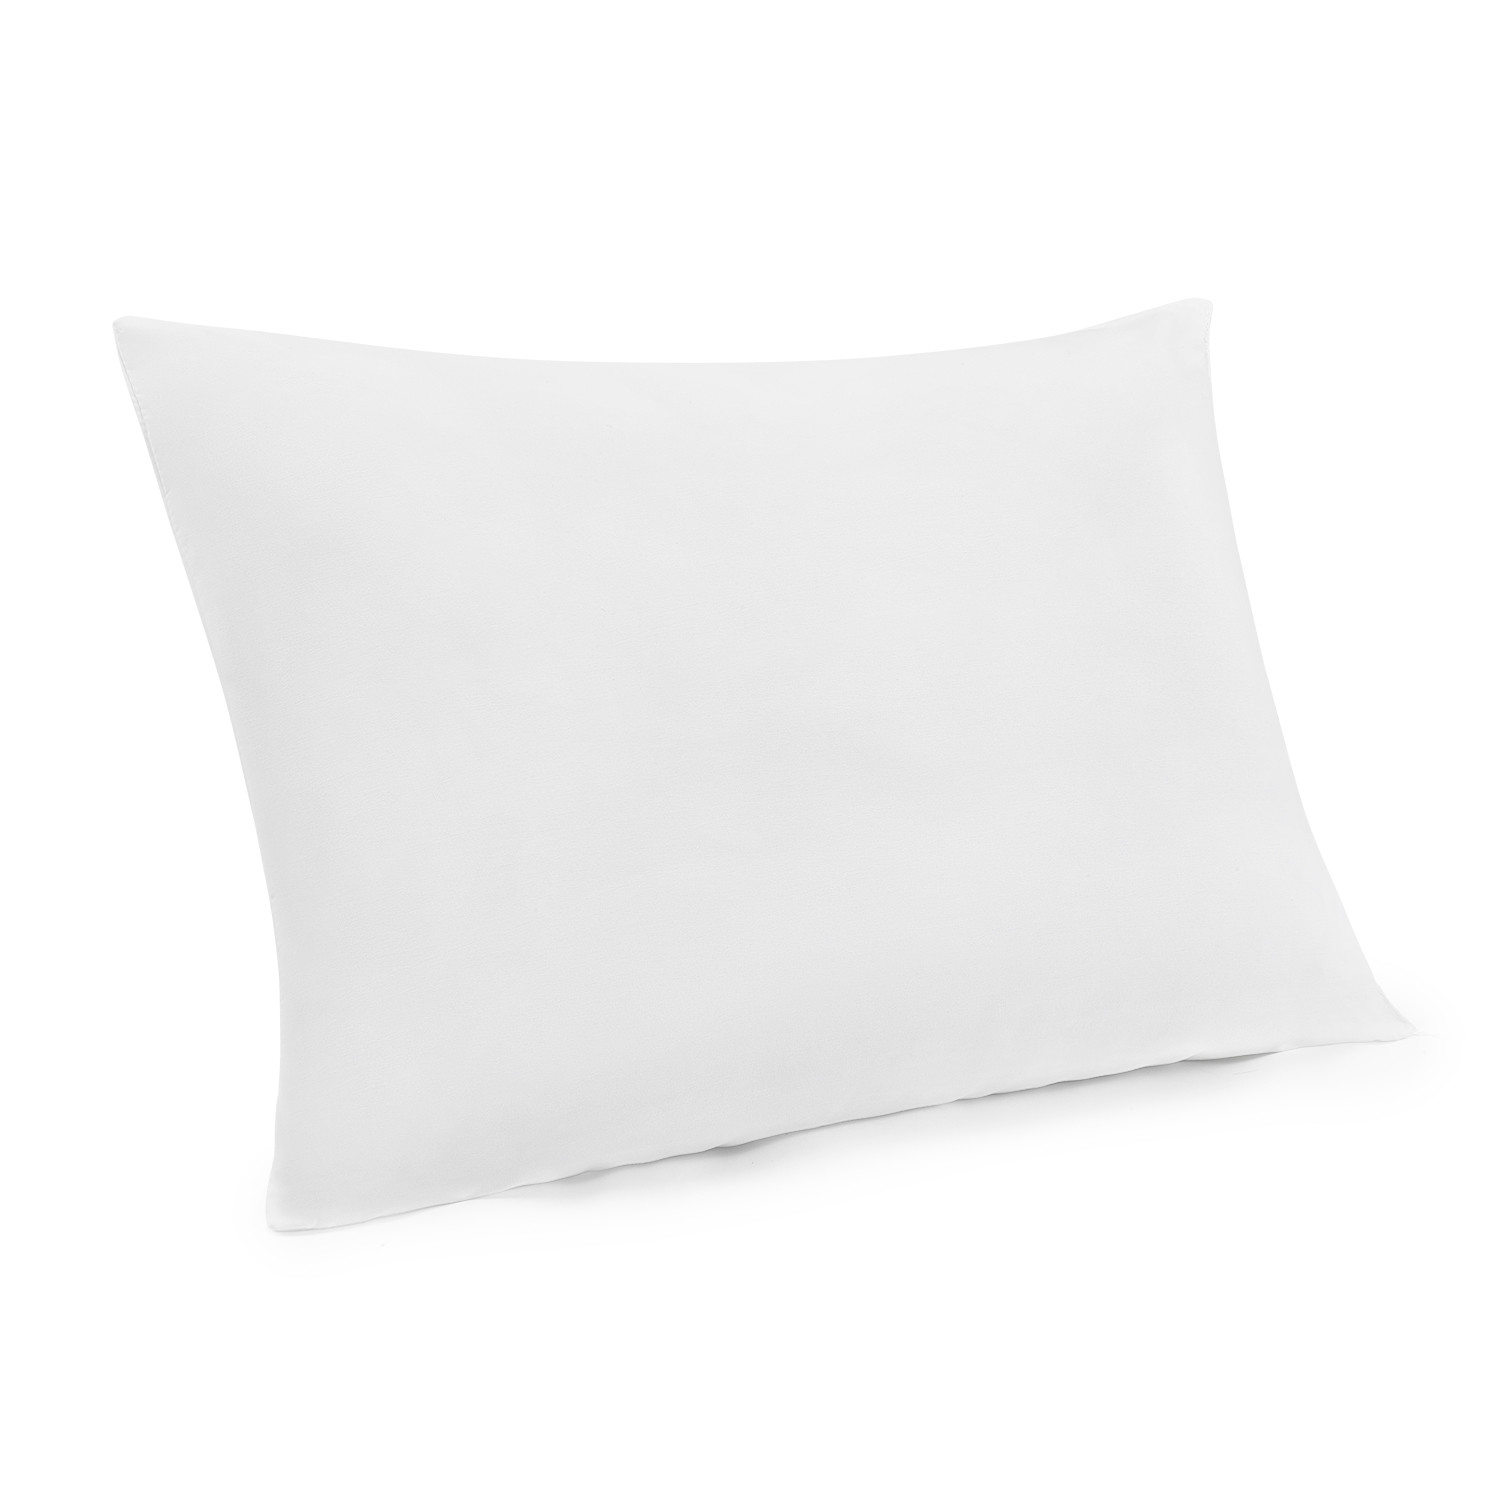 mainstays 100 polyester travel pillow 14 x 20 in white set of 2